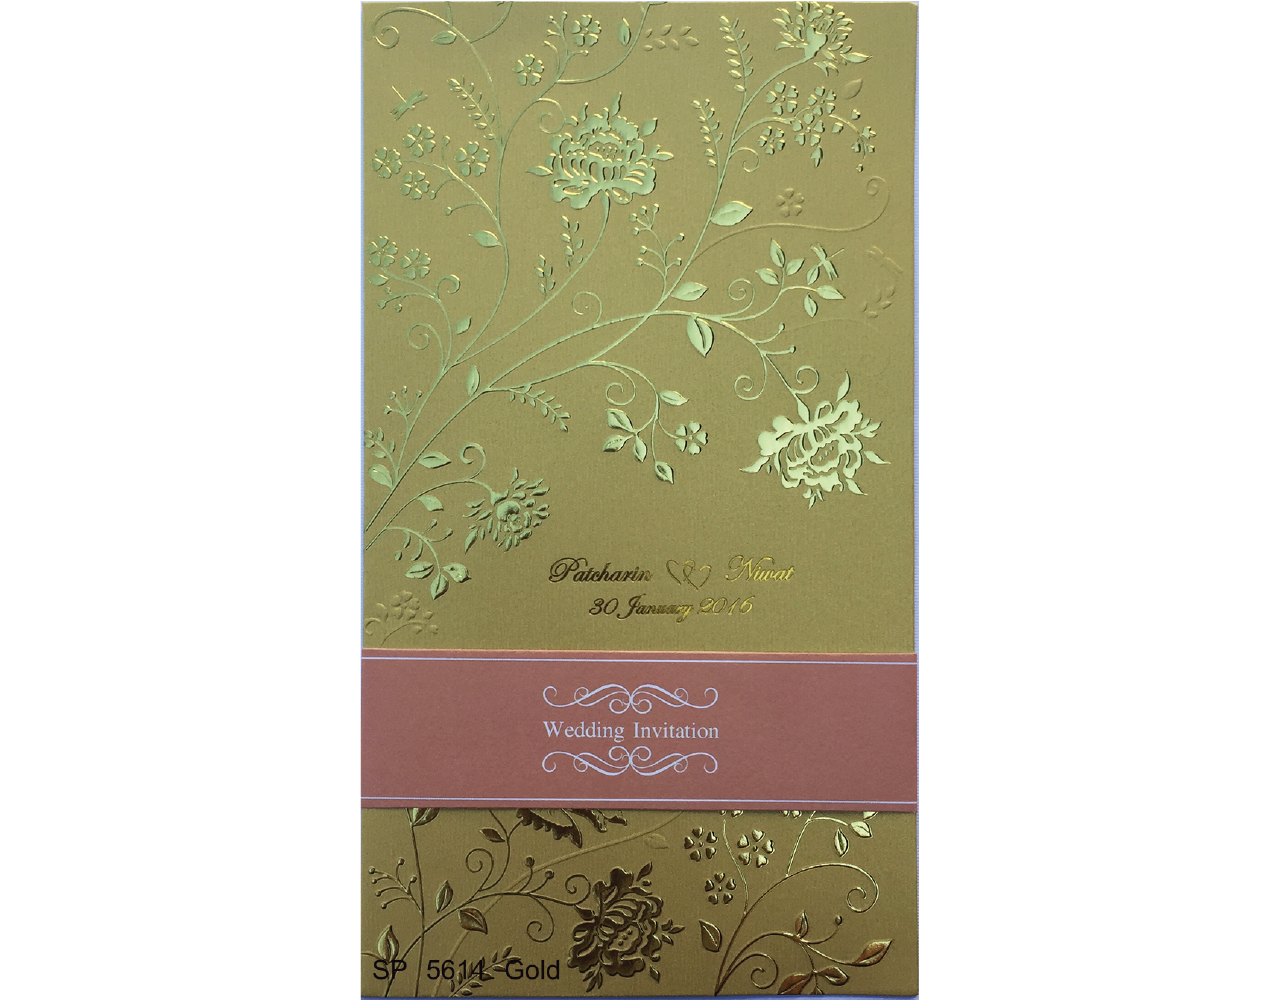 wedding card 5×9 inch SP 5614 Gold